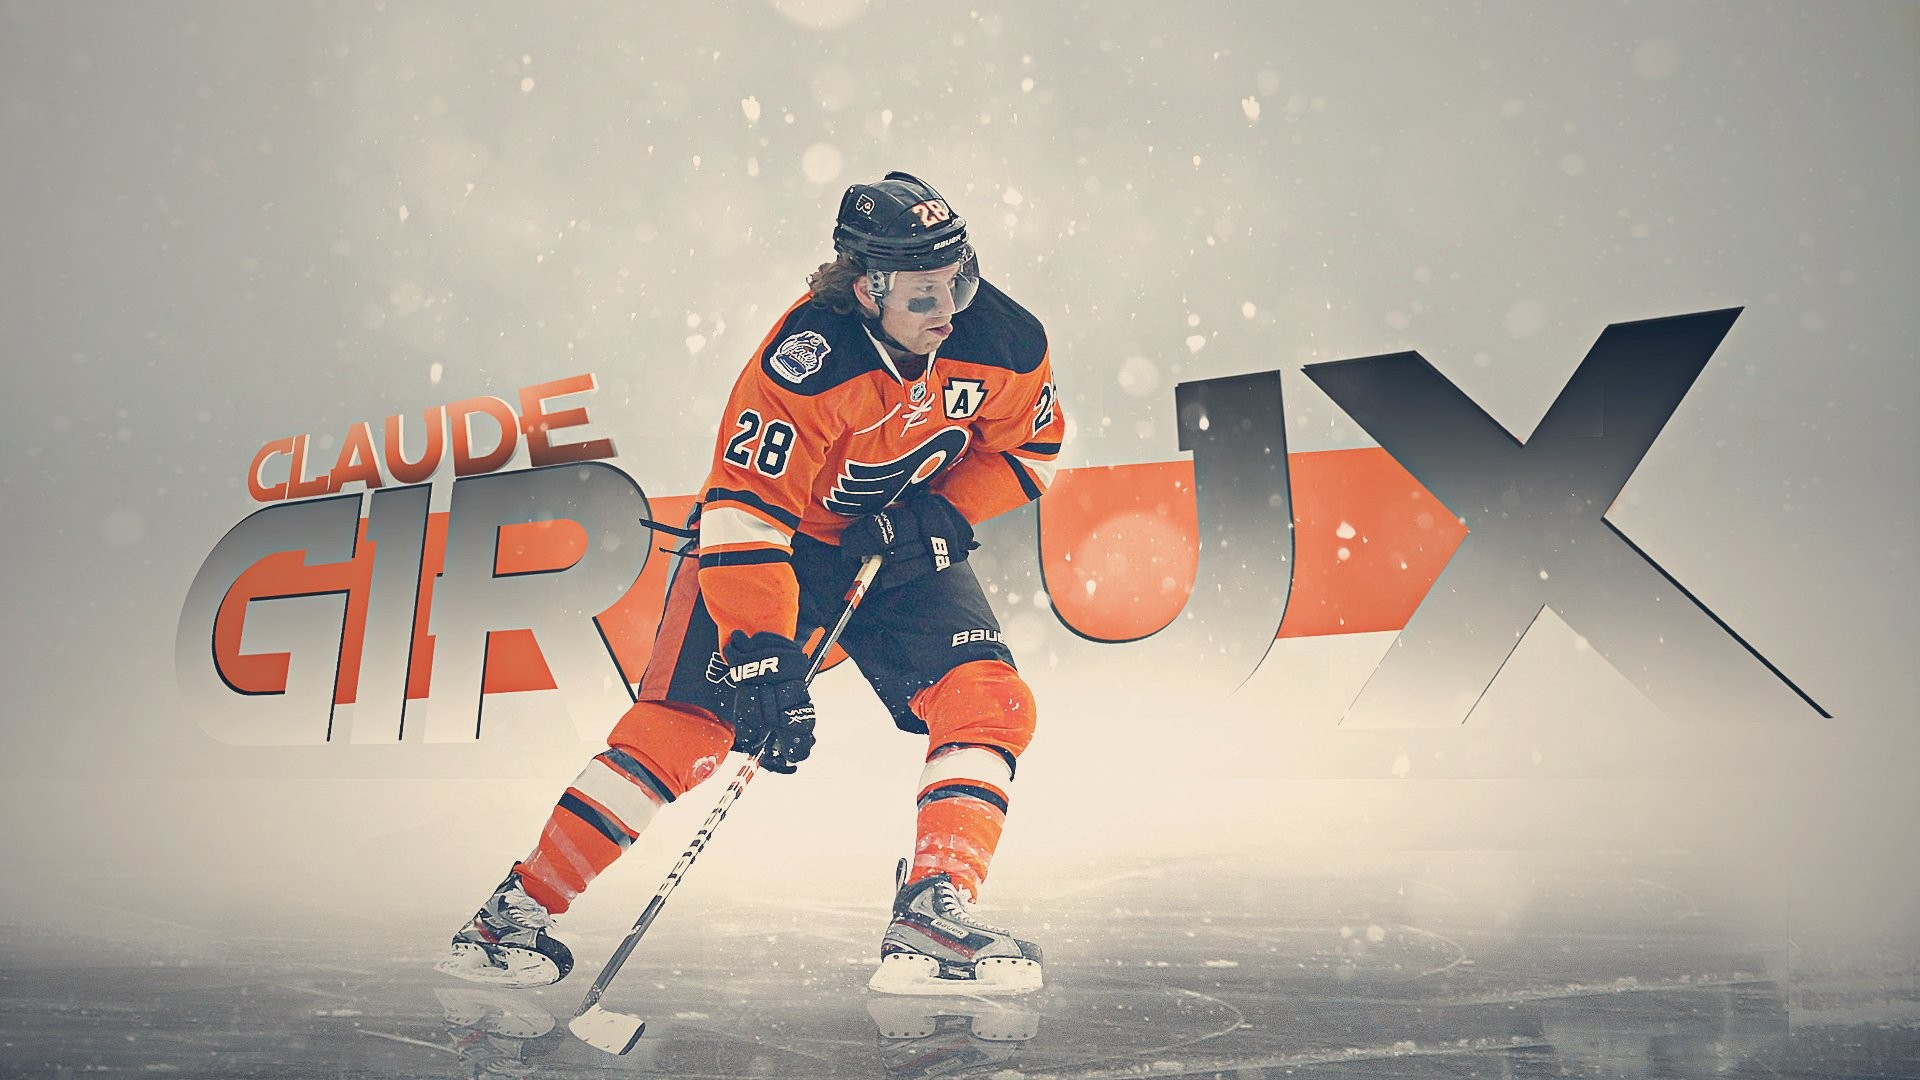 62 Flyers Wallpapers on WallpaperPlay 1920x1080